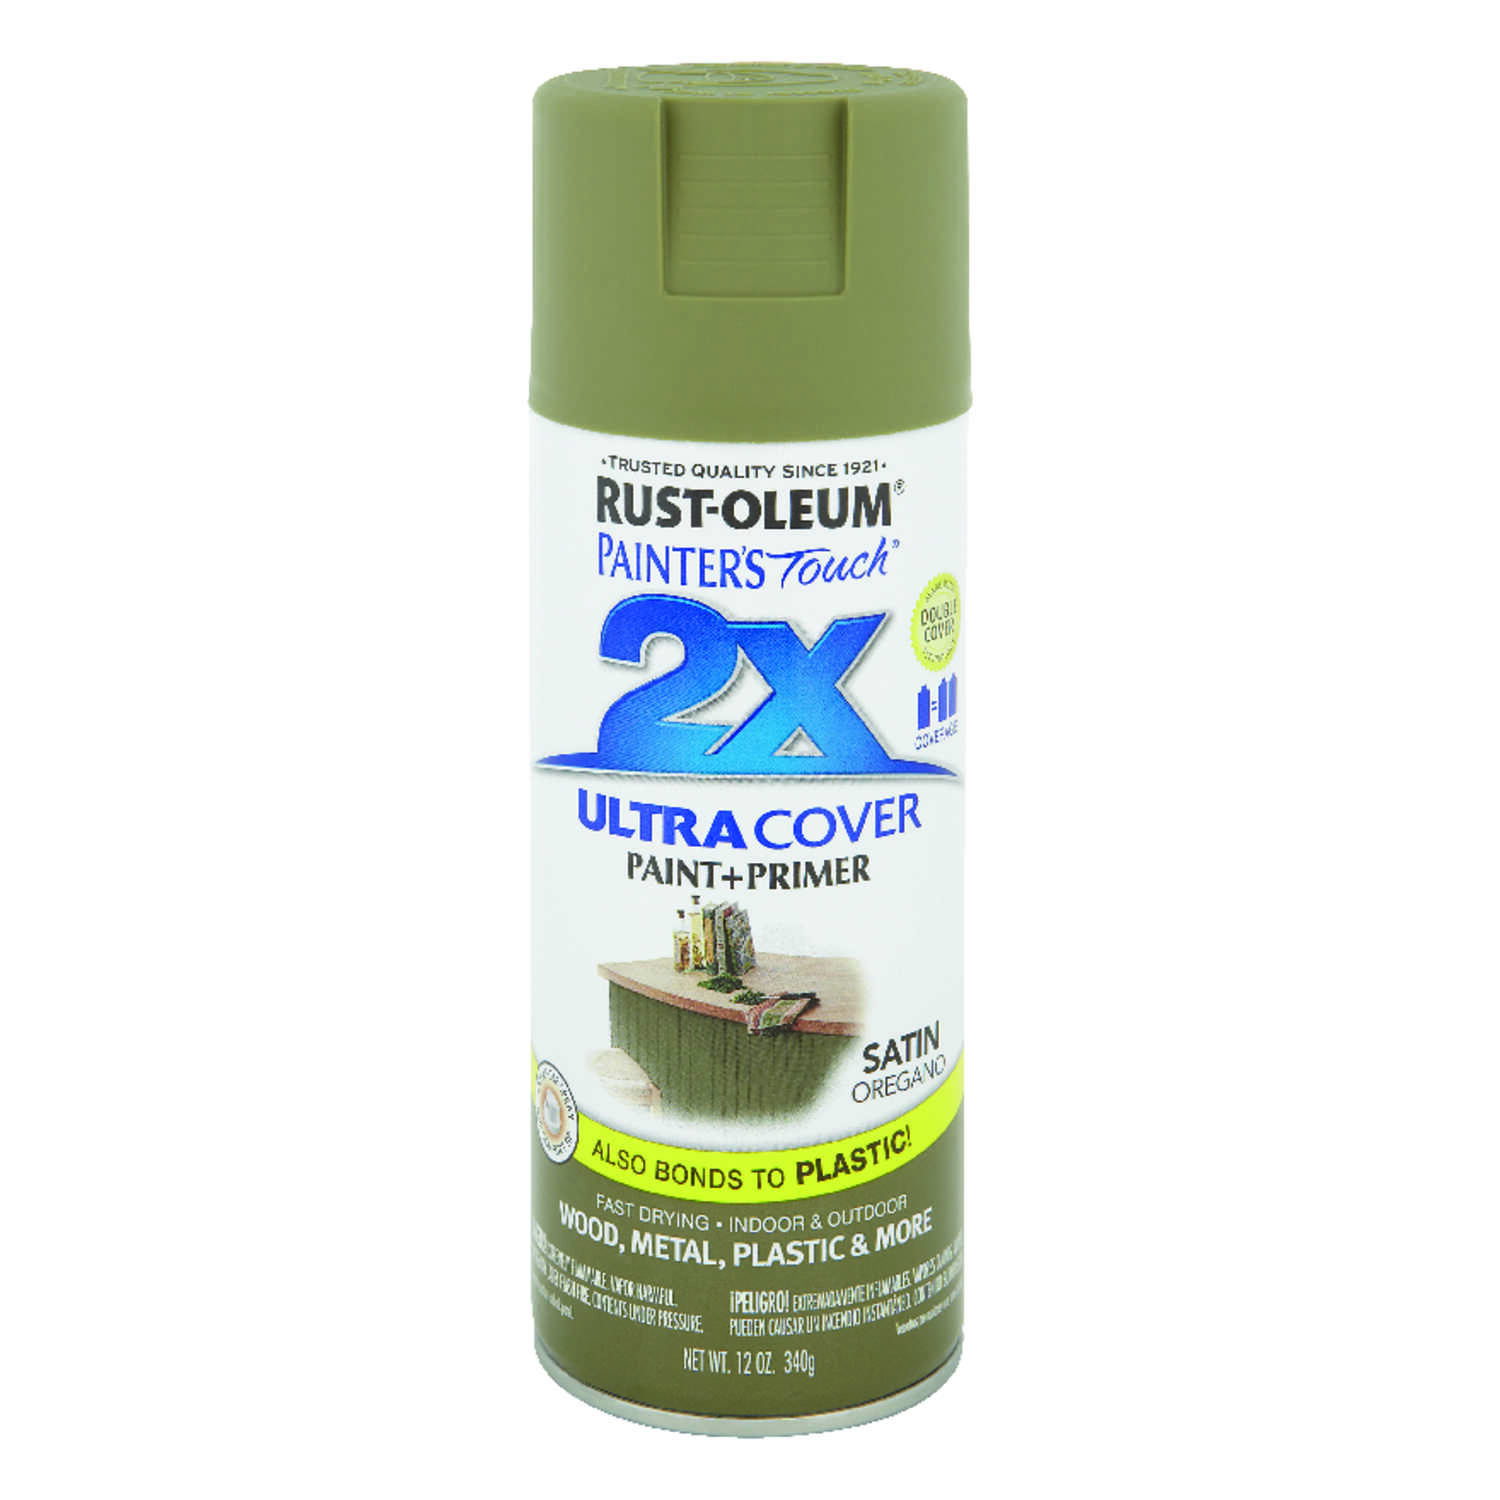 Rust-Oleum  Painter's Touch Ultra Cover  Satin  Oregano  Spray Paint  12 oz.